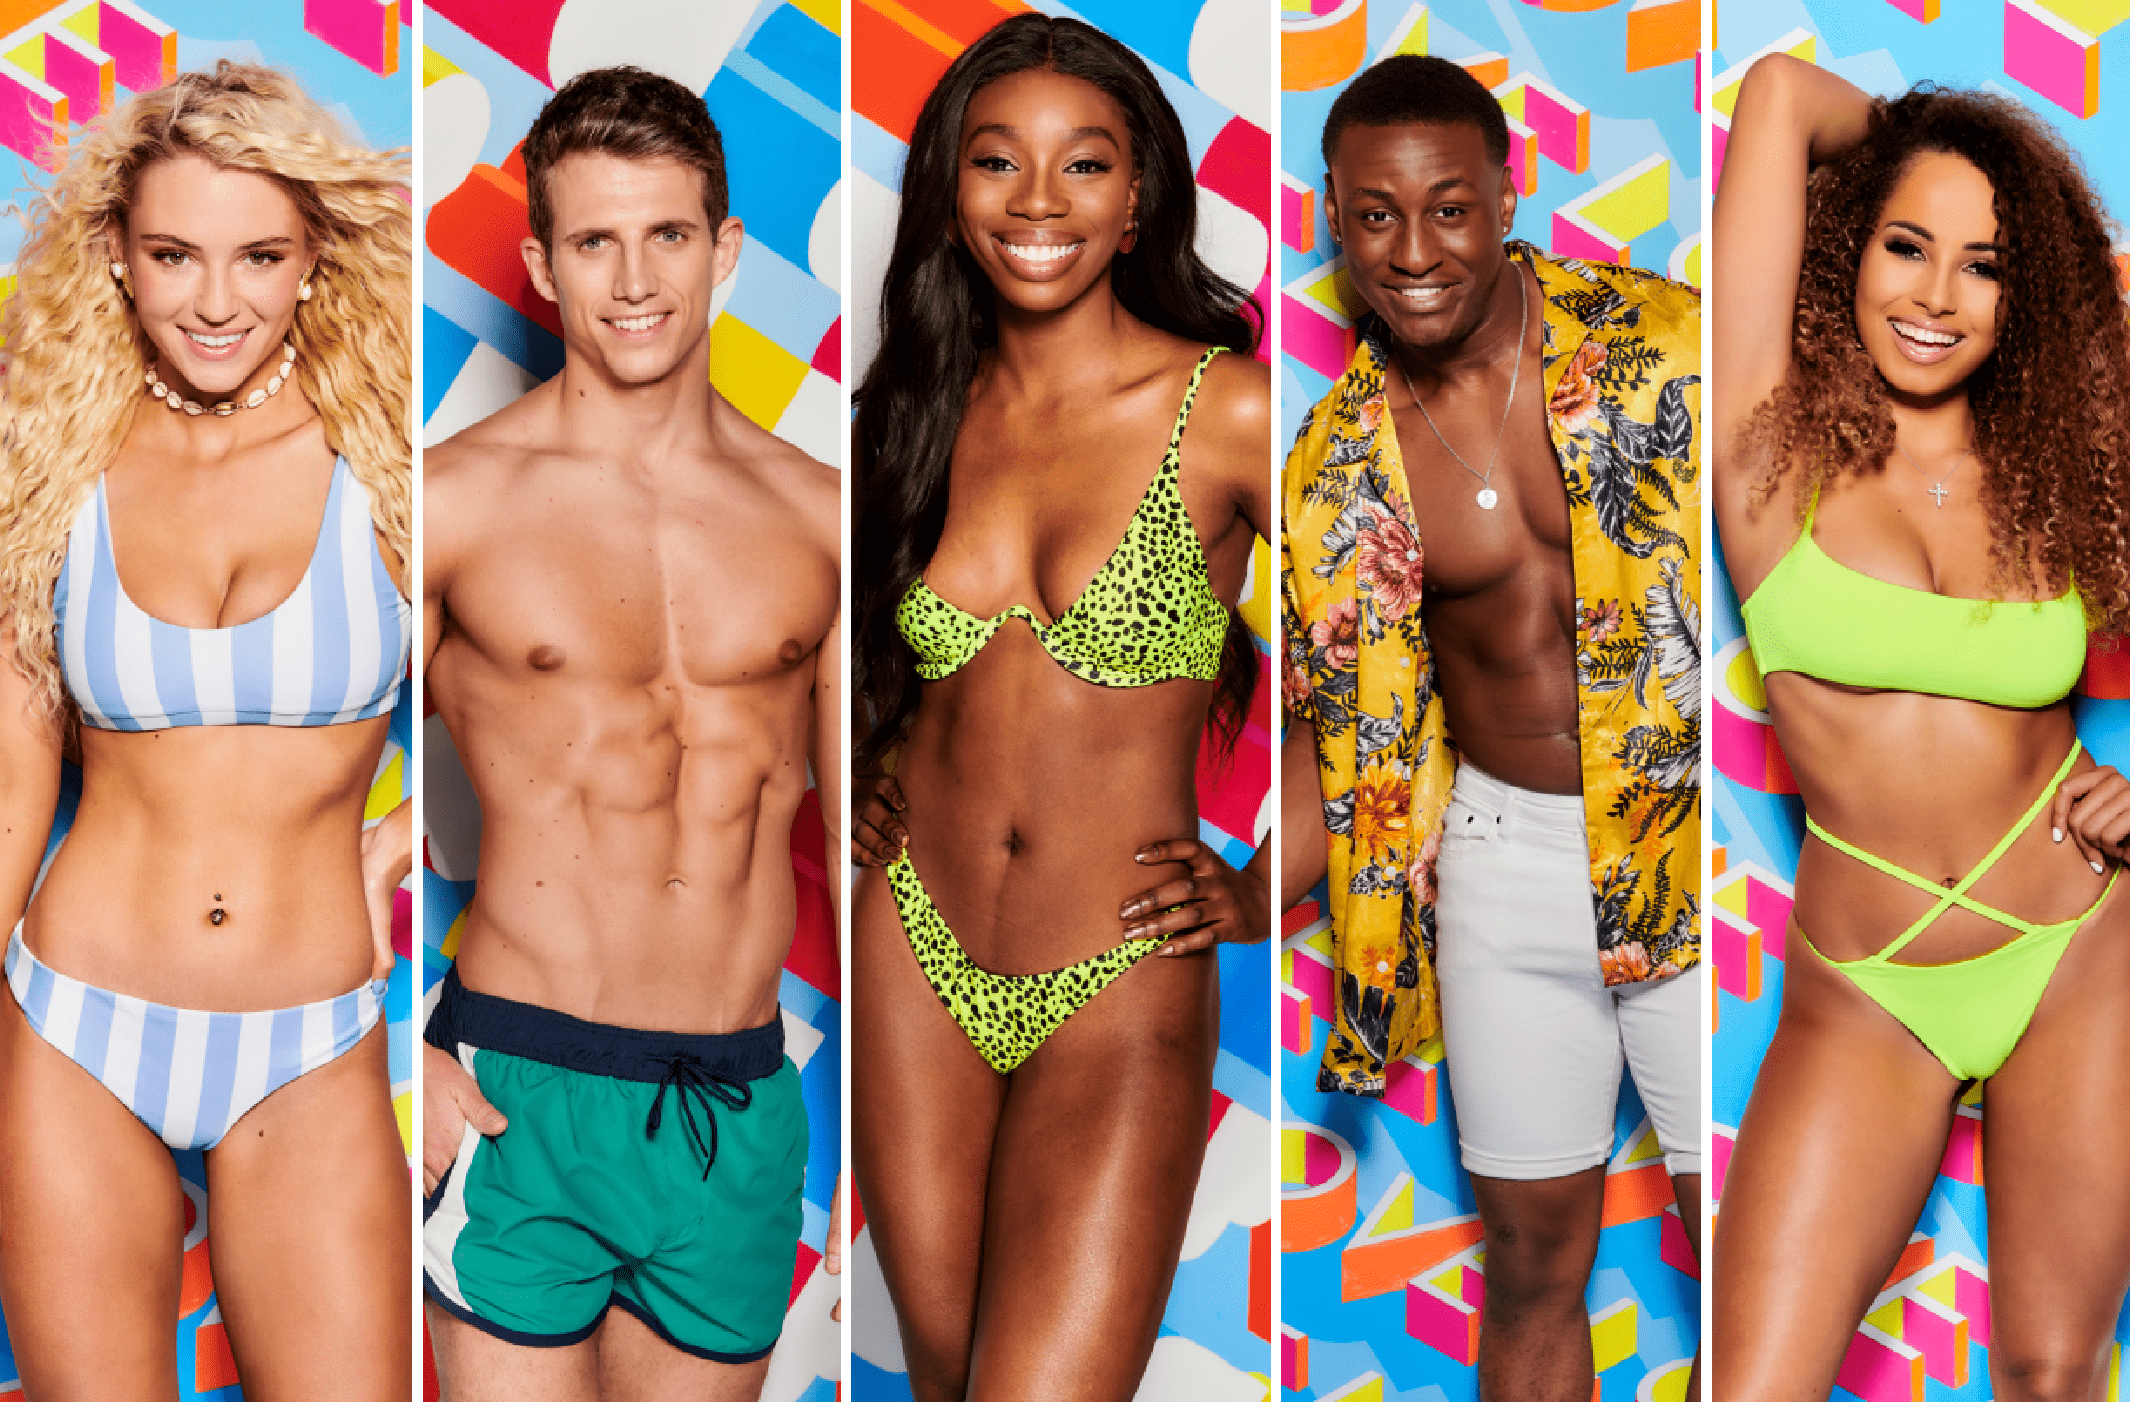 How to watch Love Island online from abroad (stream it free)